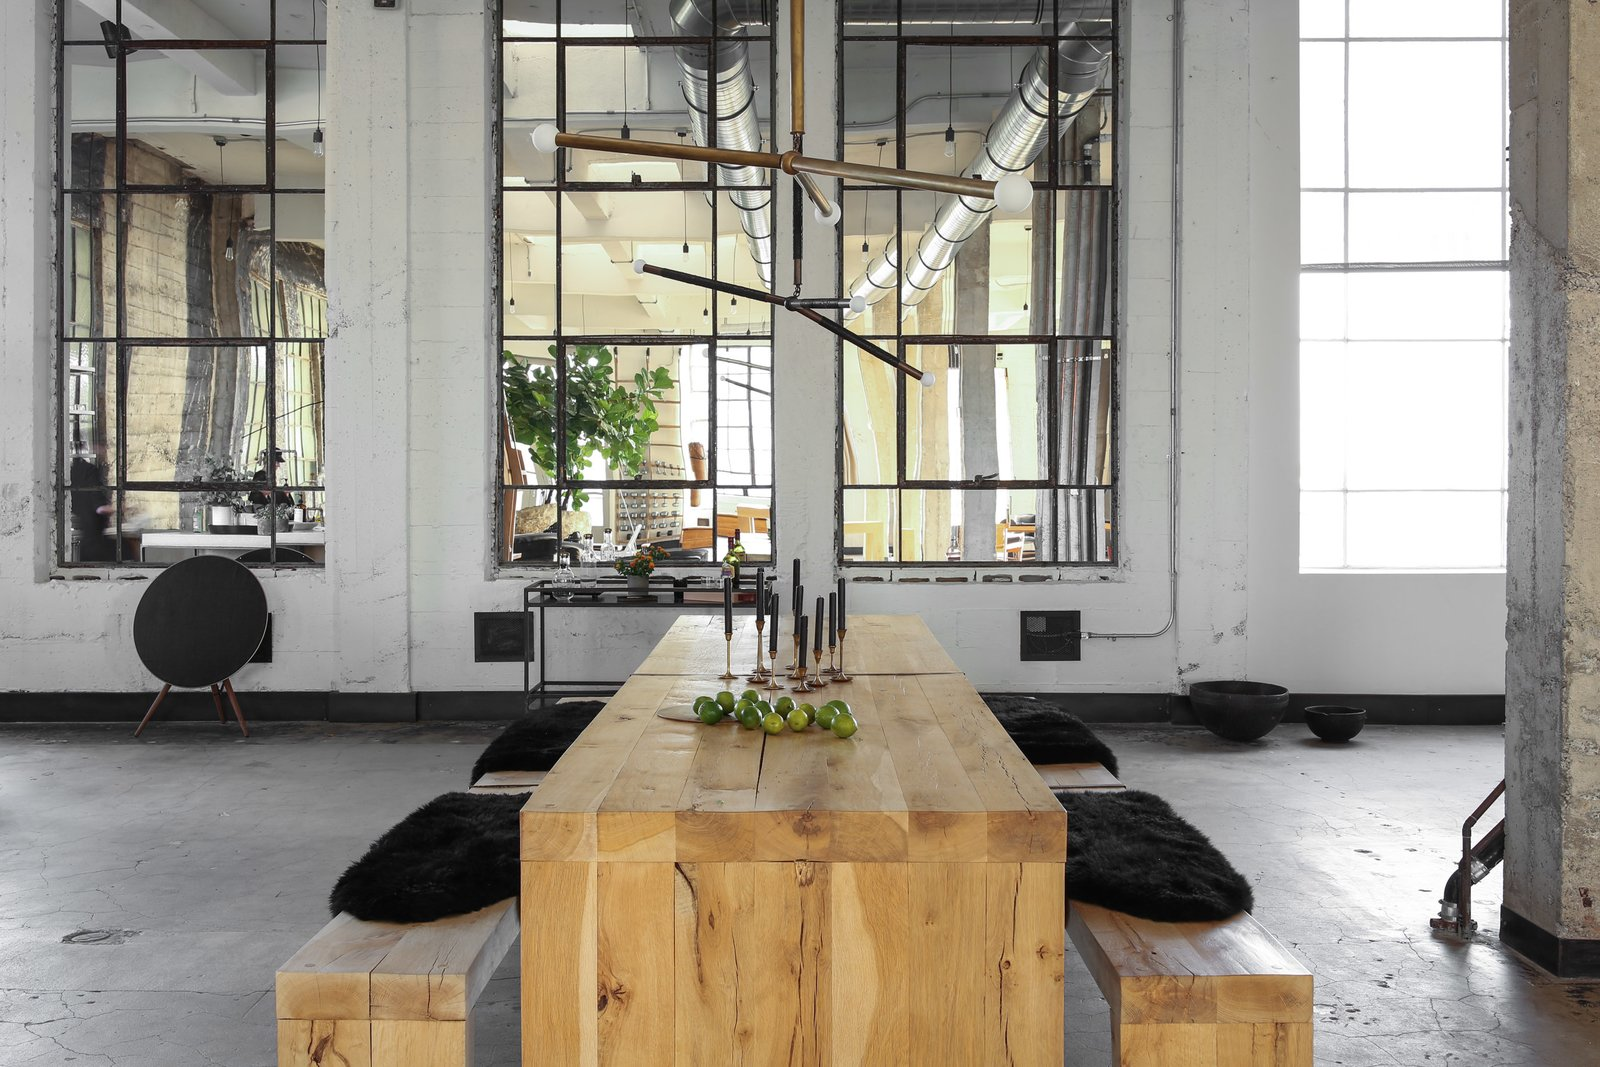 Dining Room, Table, Concrete Floor, Pendant Lighting, and Bench Lights Arrows by Apparatus in aged brass and black python, table and benches are custom made from a very rare and heavy reclaimed oak. Vintage brass candlesticks sourced from an auction and black candles by Cire Trudon. Benches are lined with Icelandic sheepskin throws.   Photo 7 of 13 in A 1920s Office Space Is Transformed Into a Polished Penthouse